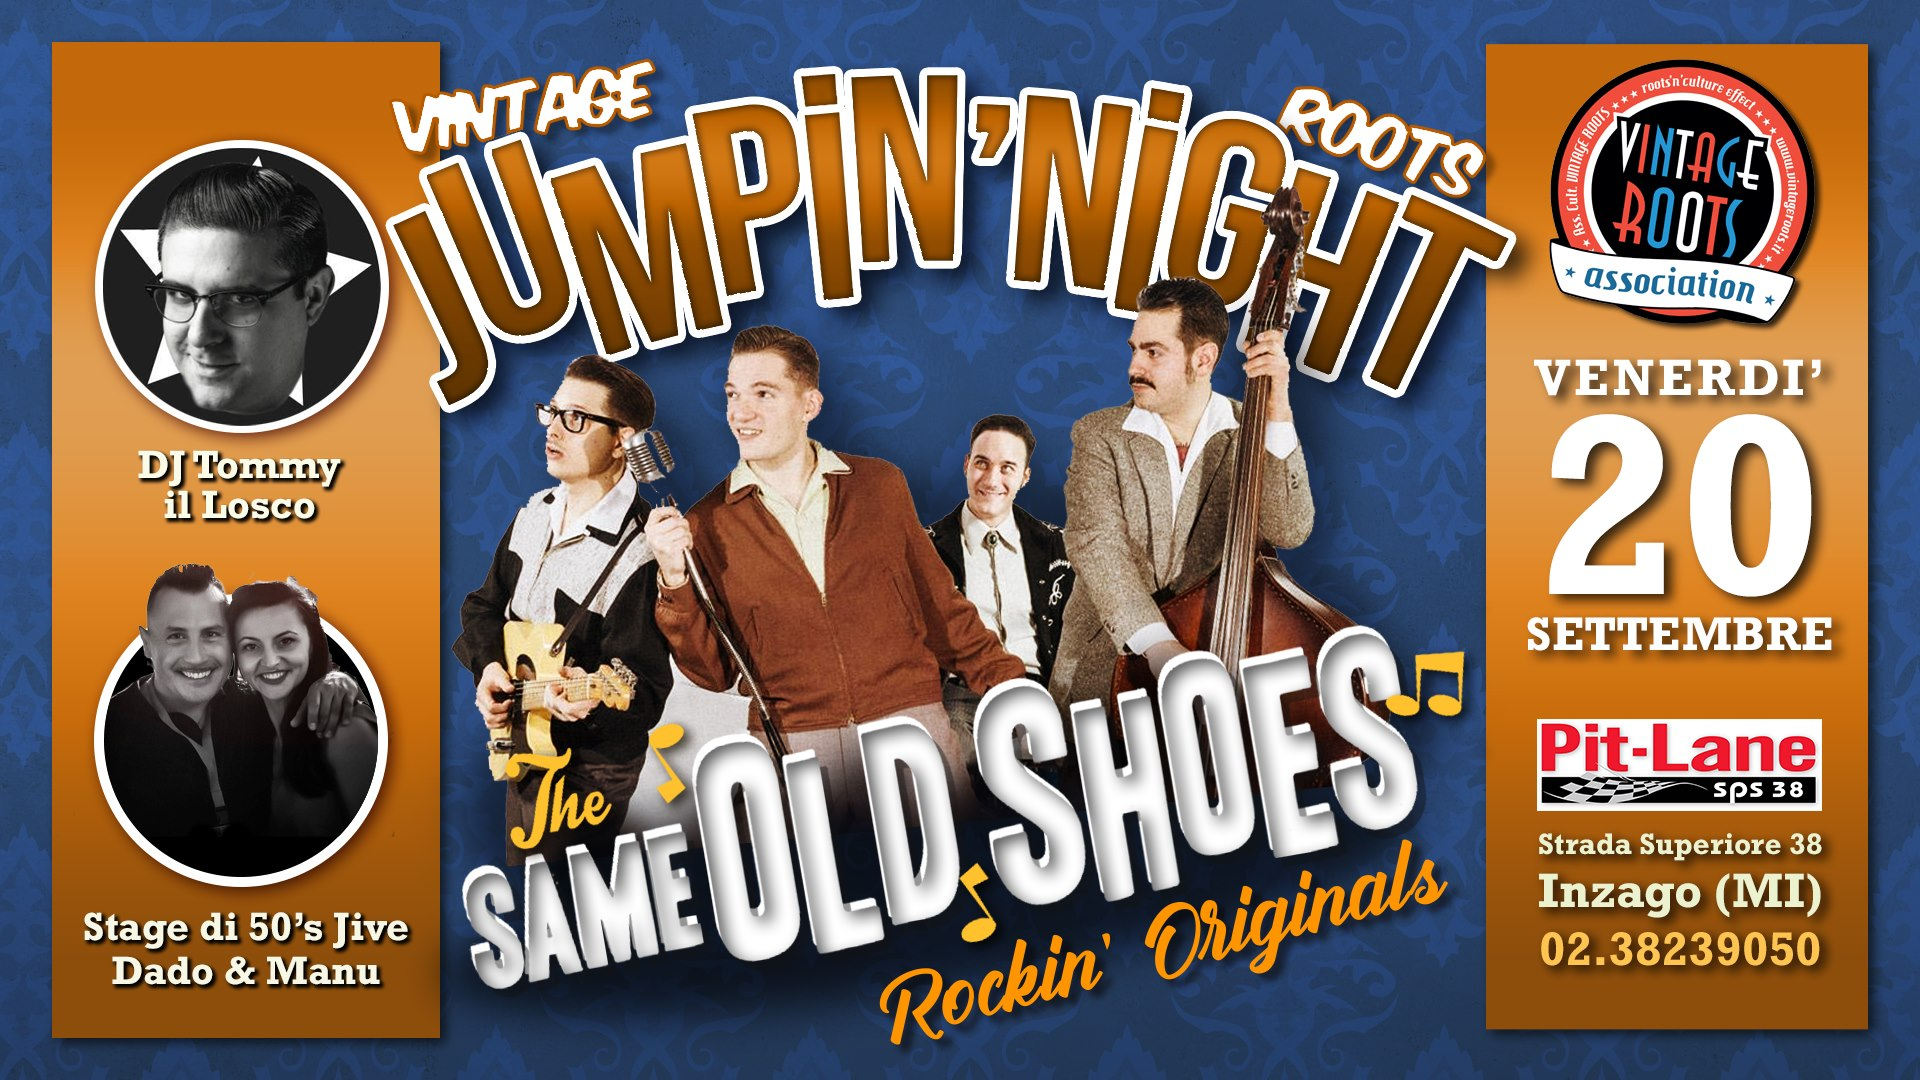 Vintage Roots Jumpin' Night ♫ LIVE The Same Old Shoes